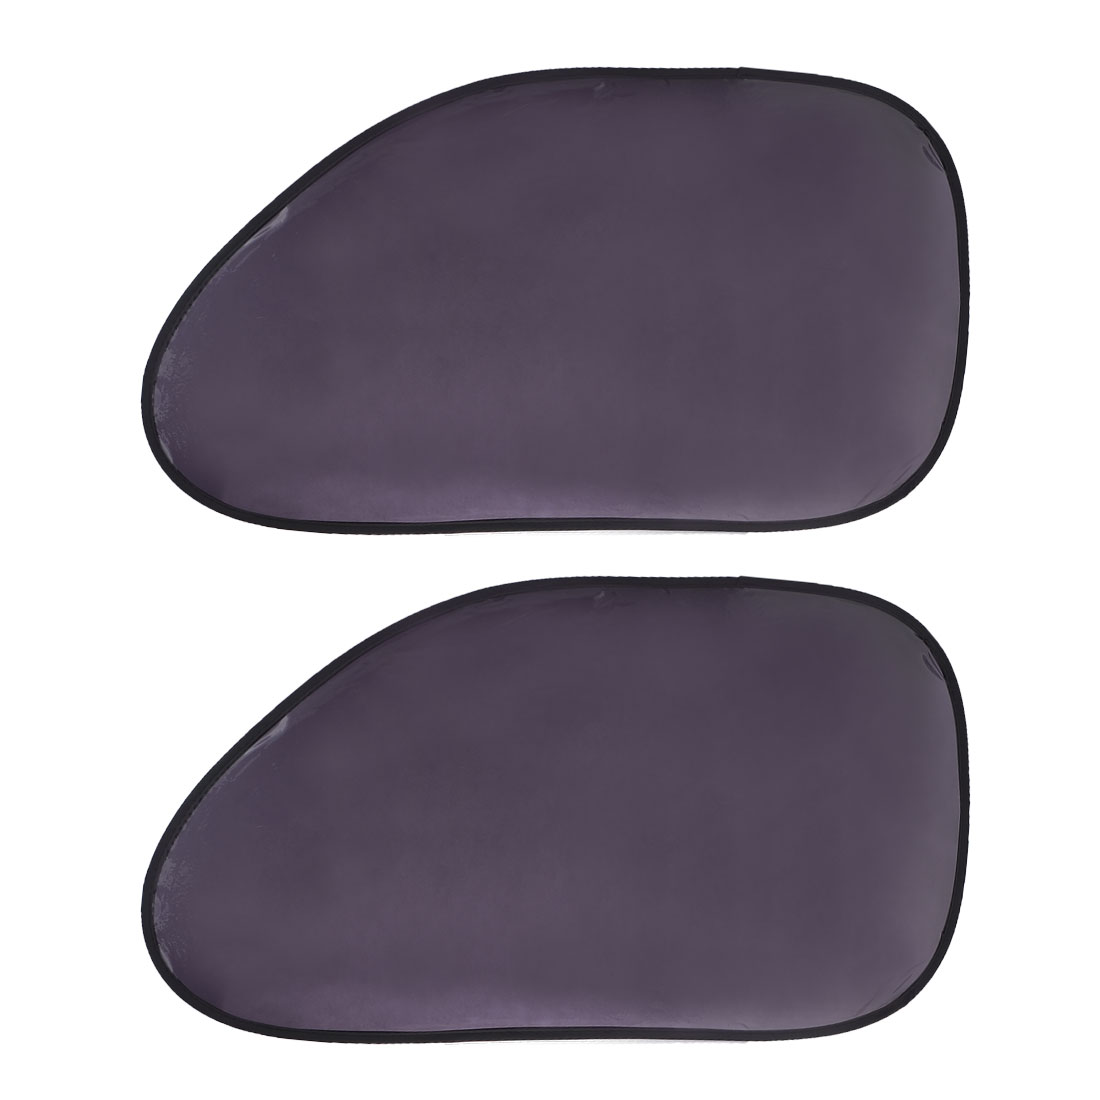 2 Pcs 66cm x 36.5cm Side Window Sun Protector UV Ray Sun Shade for Car Auto